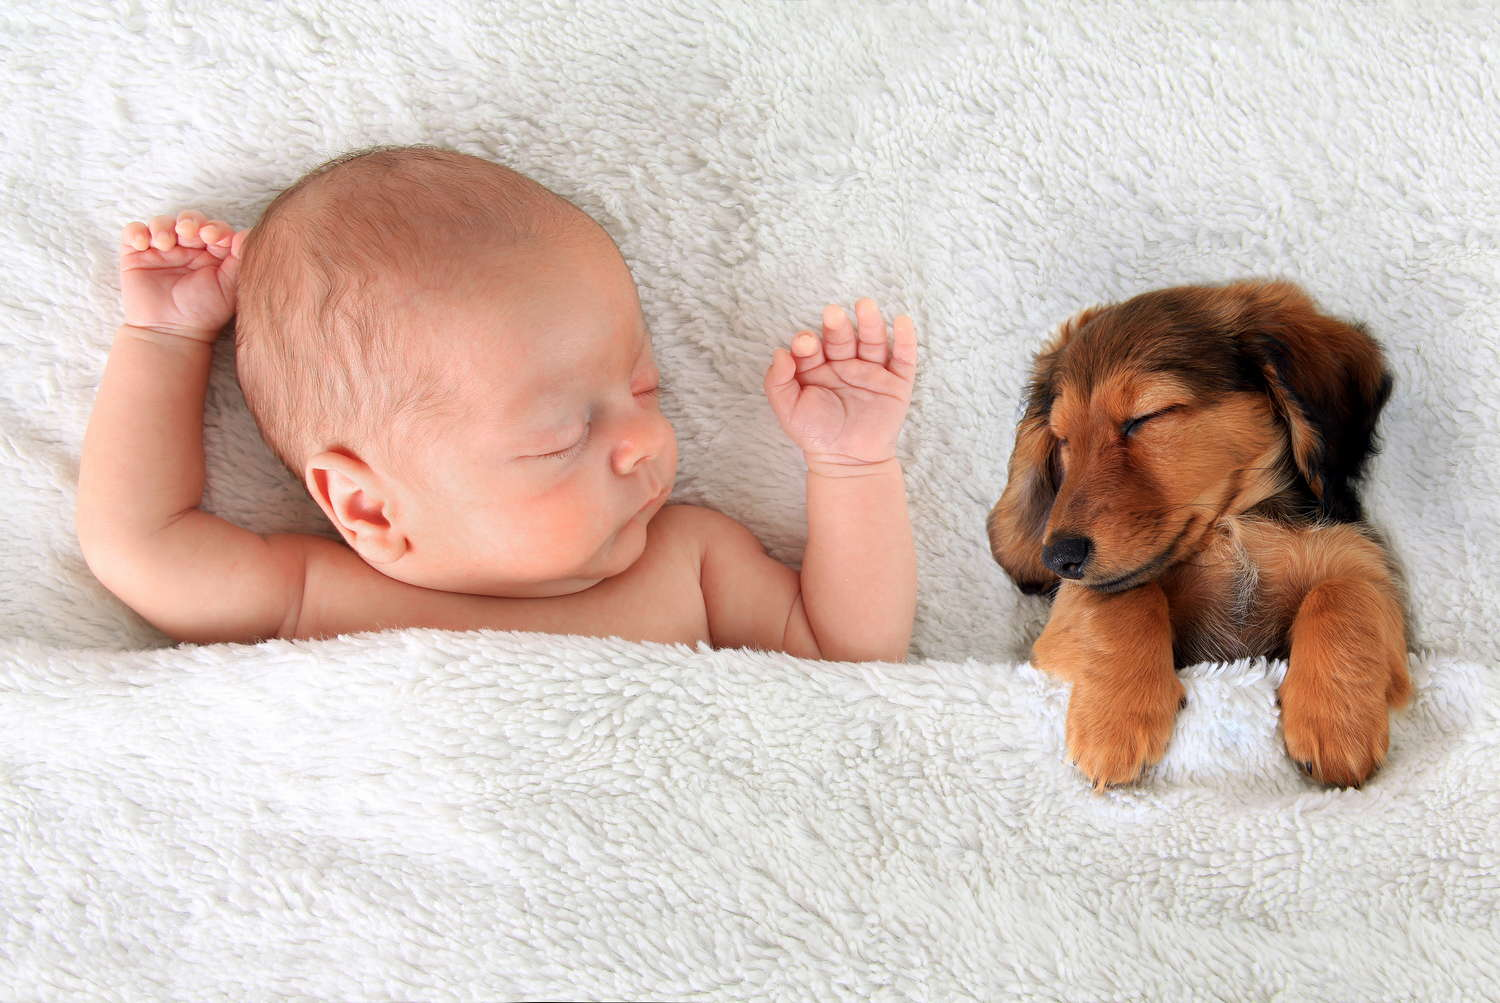 baby and puppy asleep